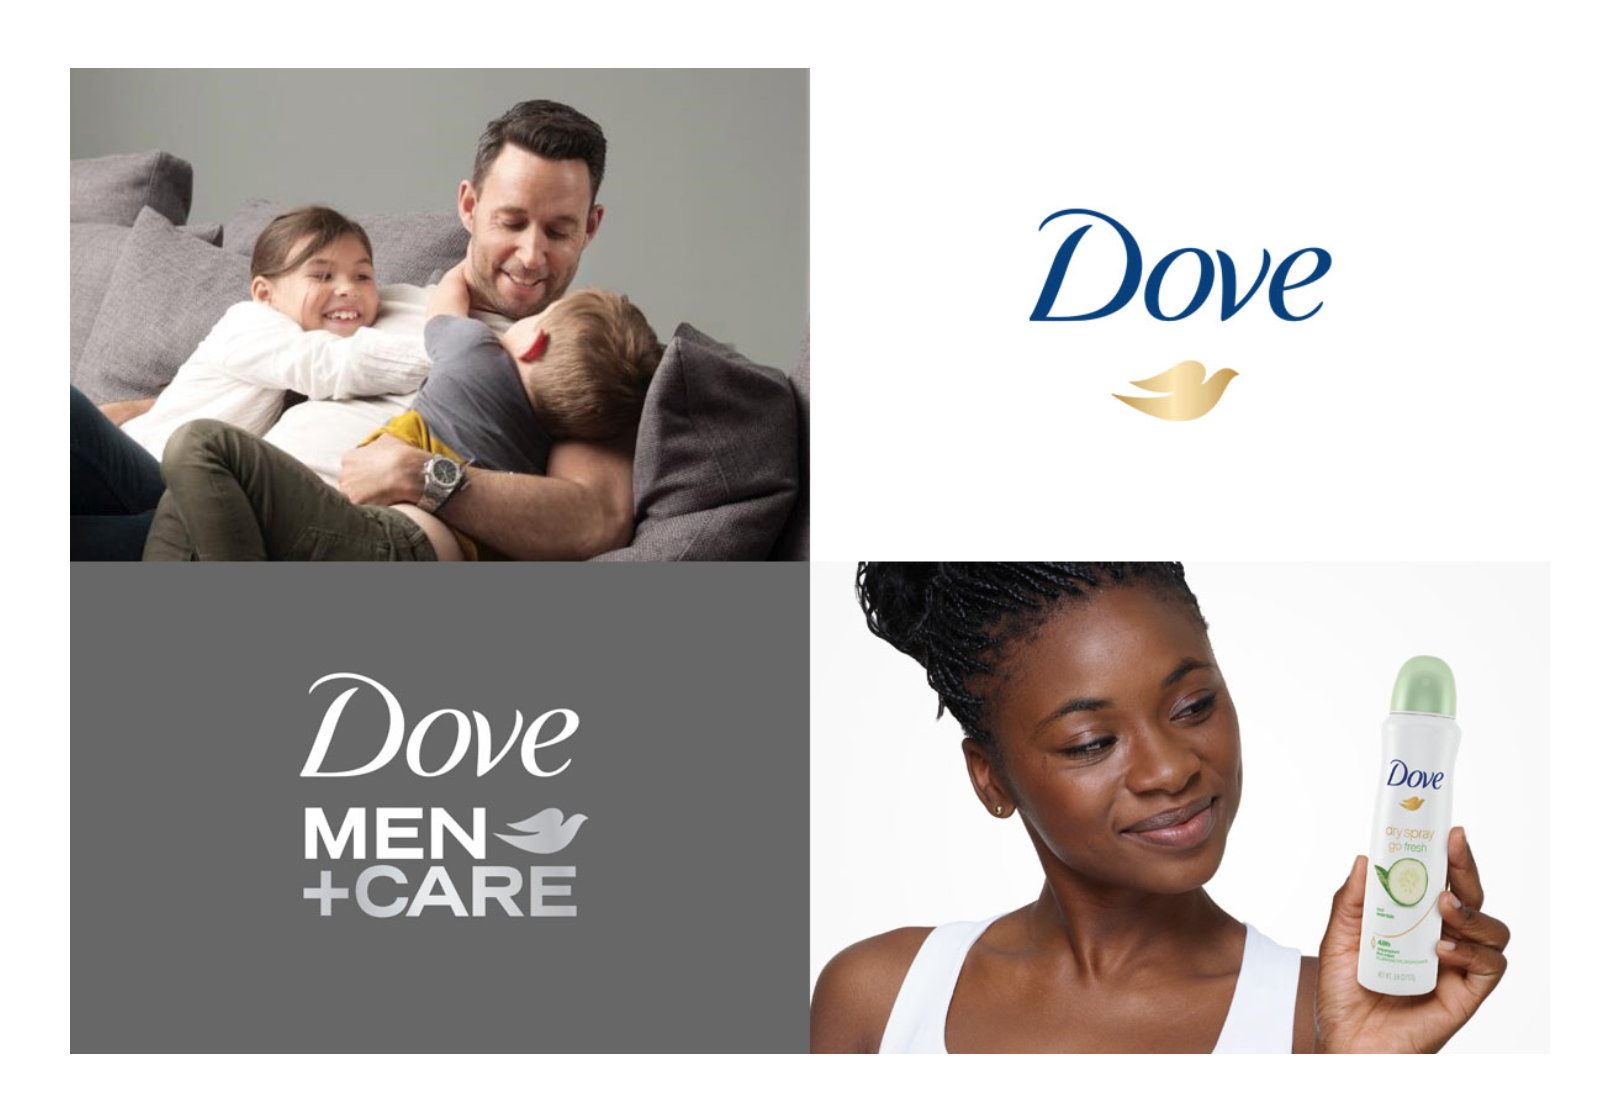 FREE DOVE DRY ANTIPERSPIRANT